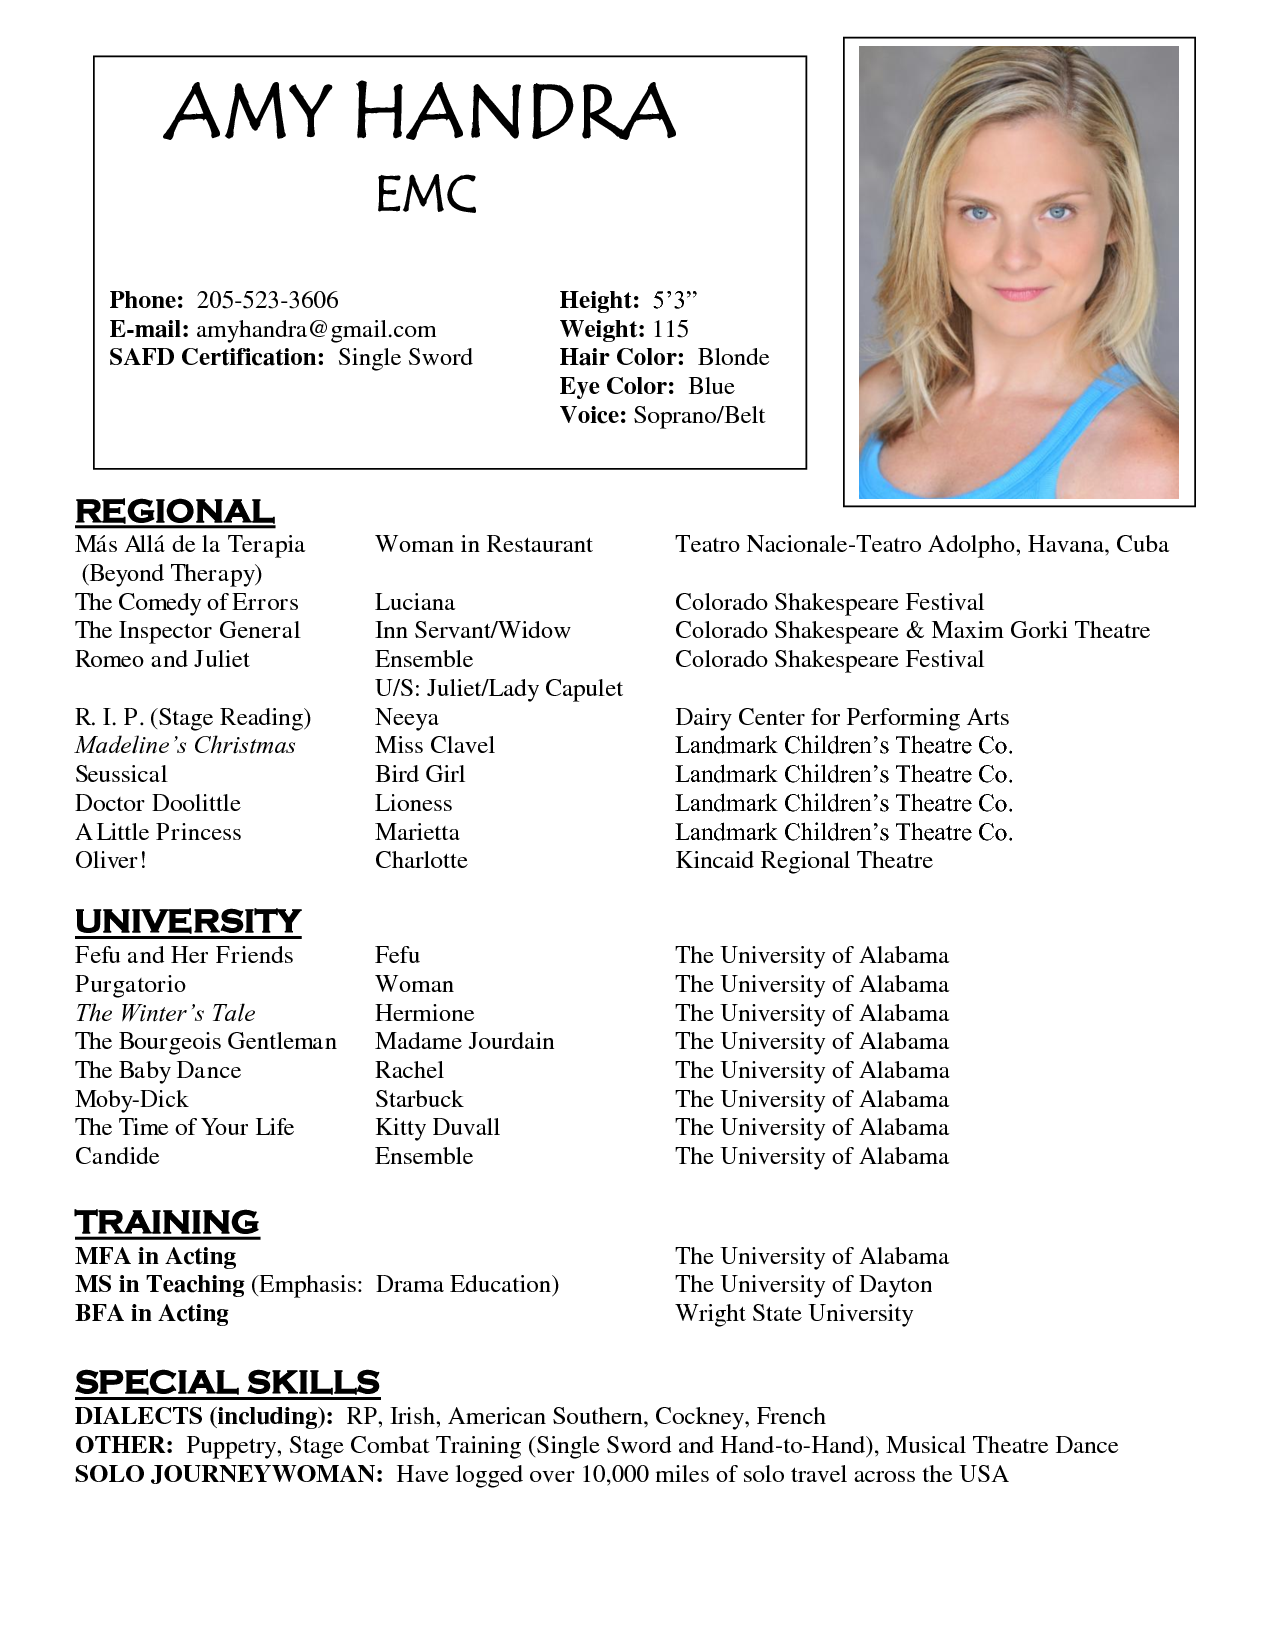 Acting Resume Sample Free Http Www Resumecareer Info Acting